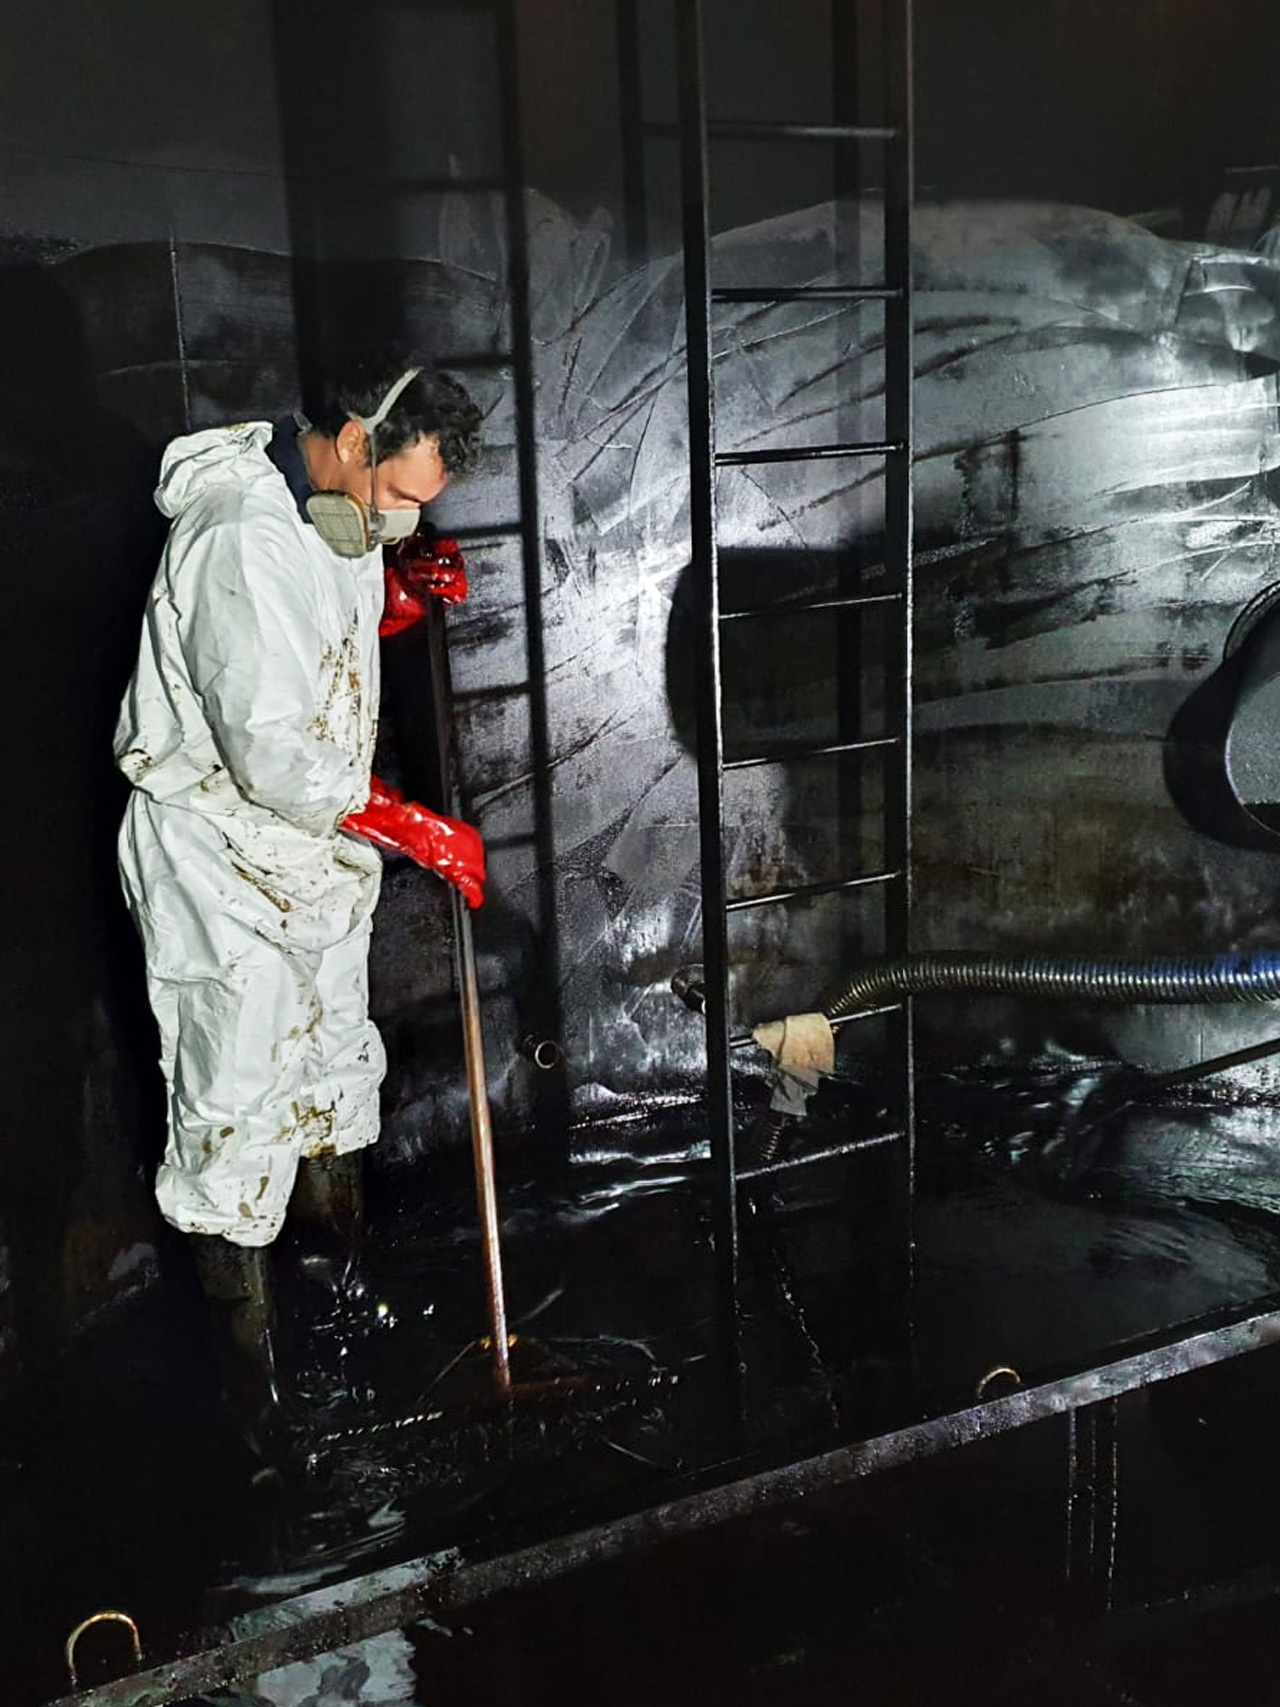 Pic showing a member of the 1st Industrial team on a tank clean at Conquest Hospital